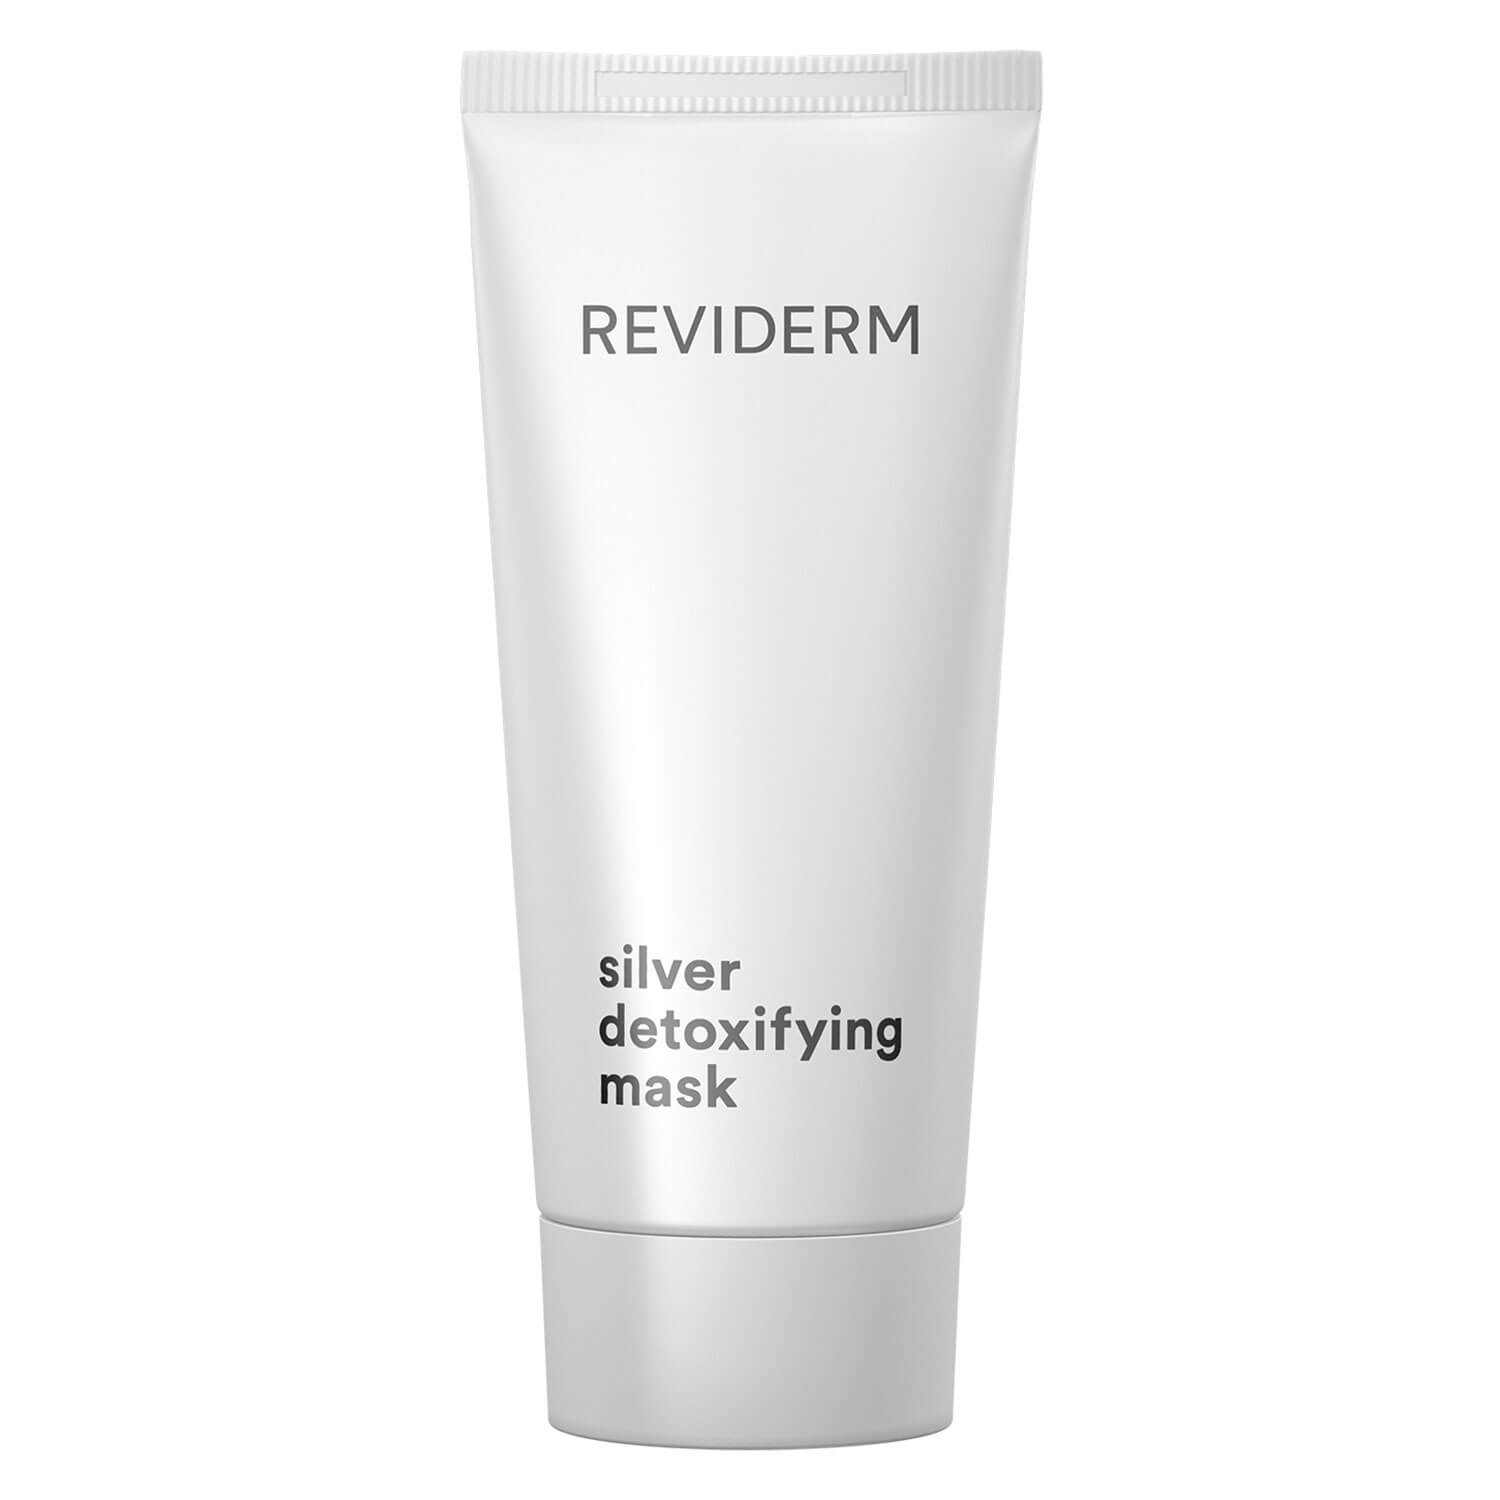 Reviderm Purity - silver detoxifying mask - 50ml